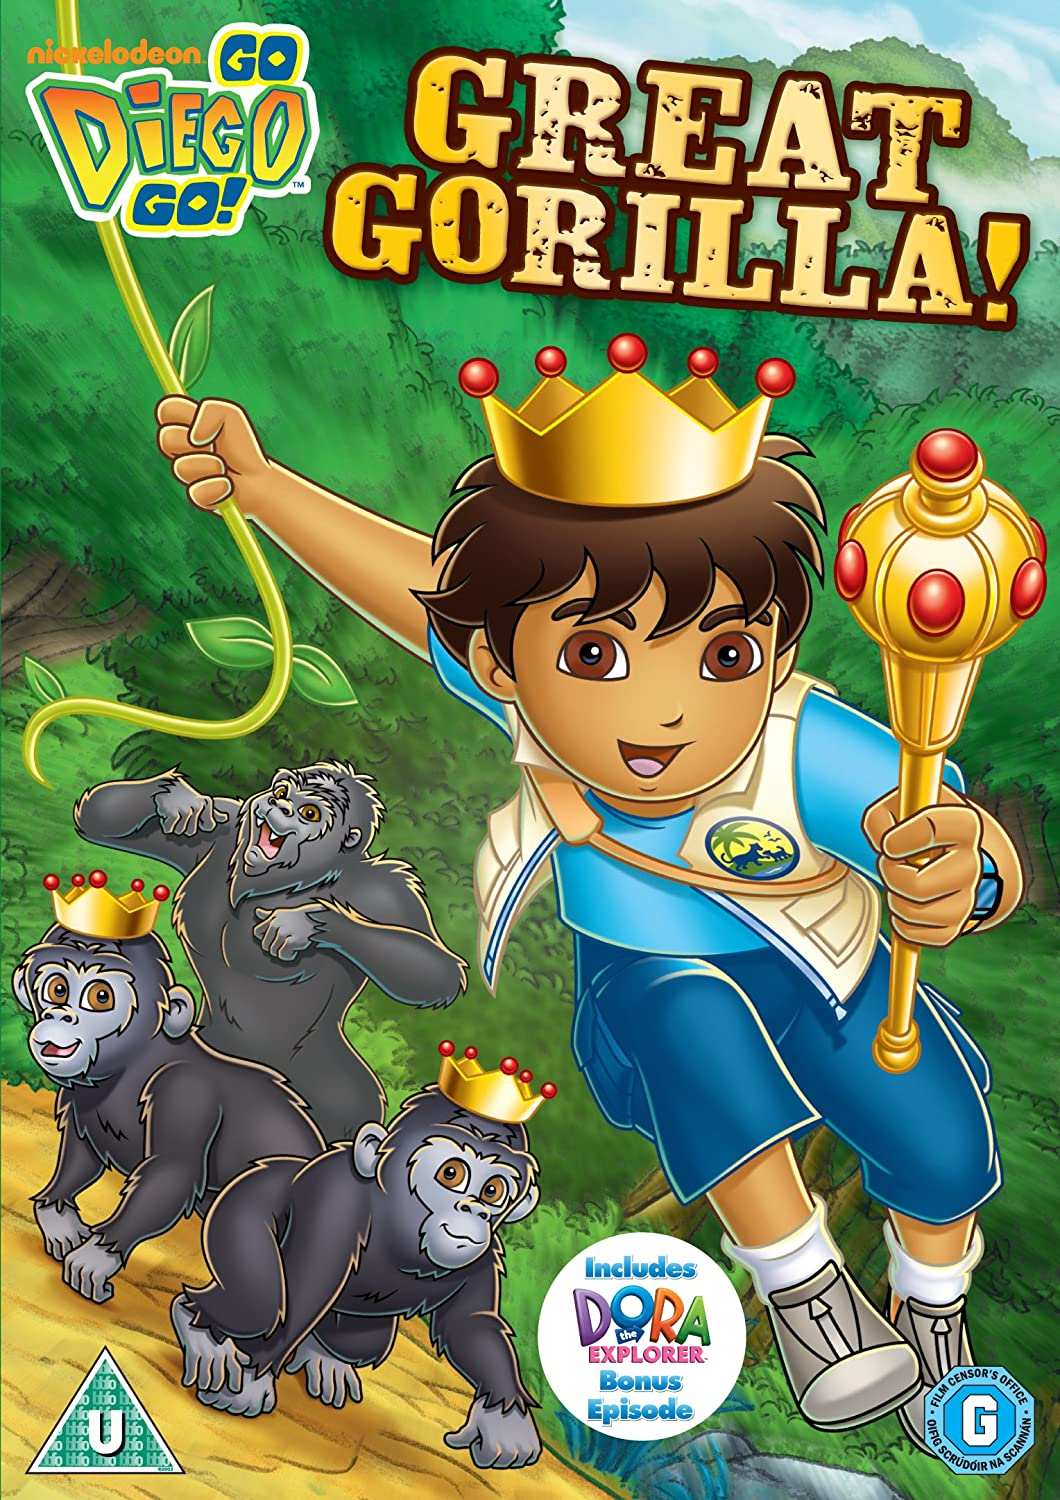 Amazoncom Go Diego Go! Diego pictures of luigi and mario ...